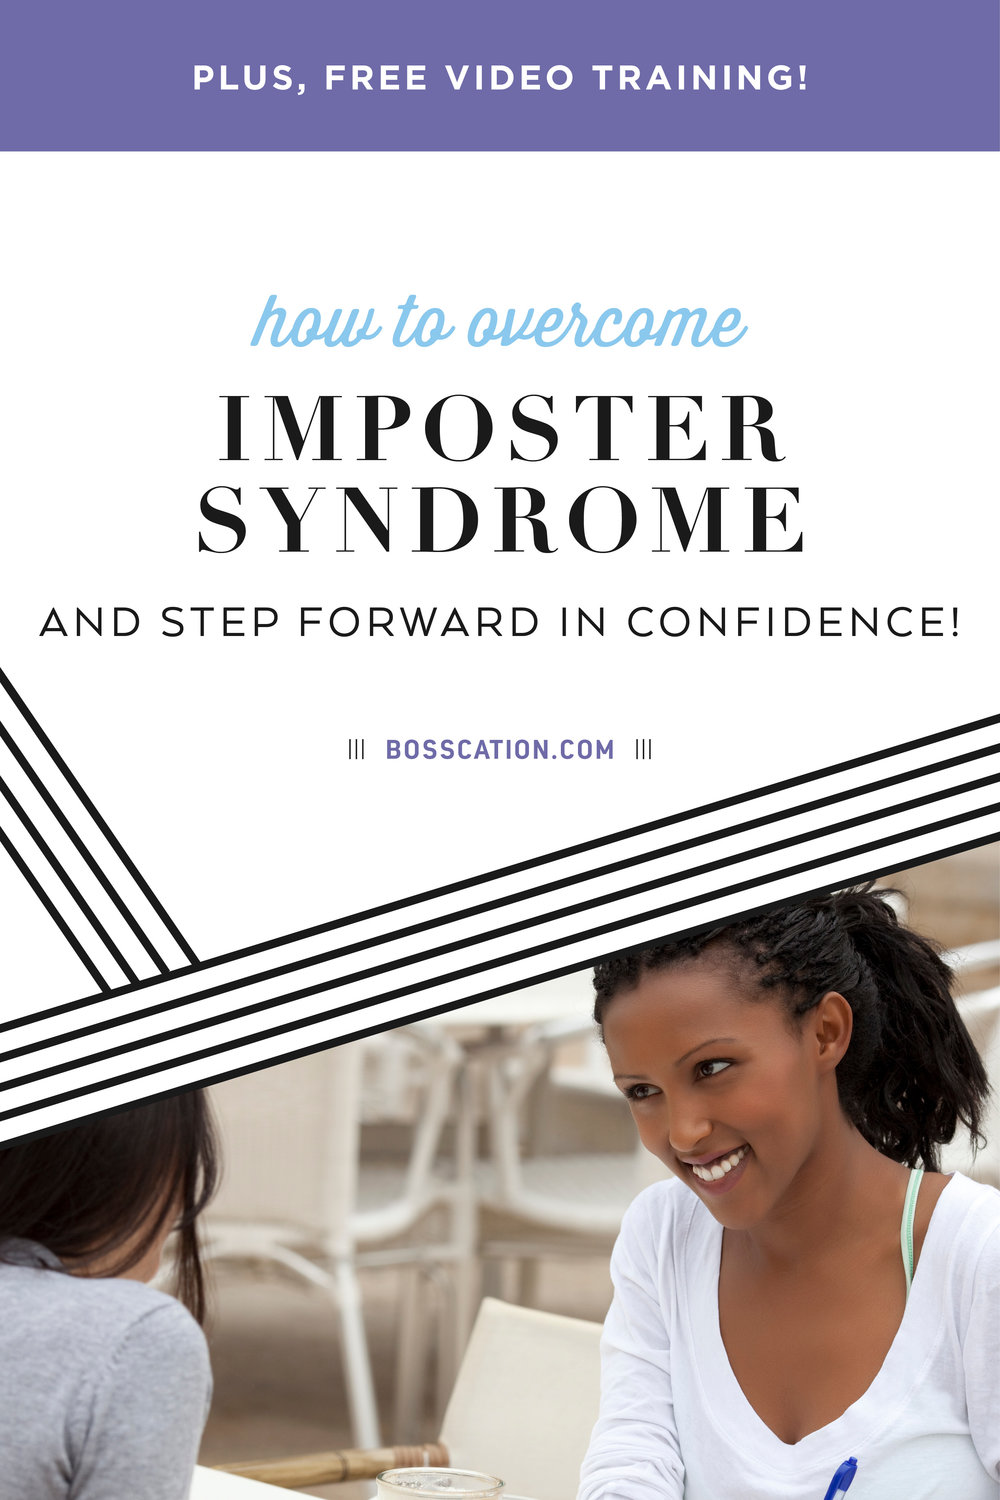 Do you suffer from imposter syndrome or feel like a fraud? Do you hold yourself back out of lack of confidence? Do you feel you're not smart enough, talented enough or experienced enough?   It's time to stop playing it small so you can reach your potential and make more money in your business!